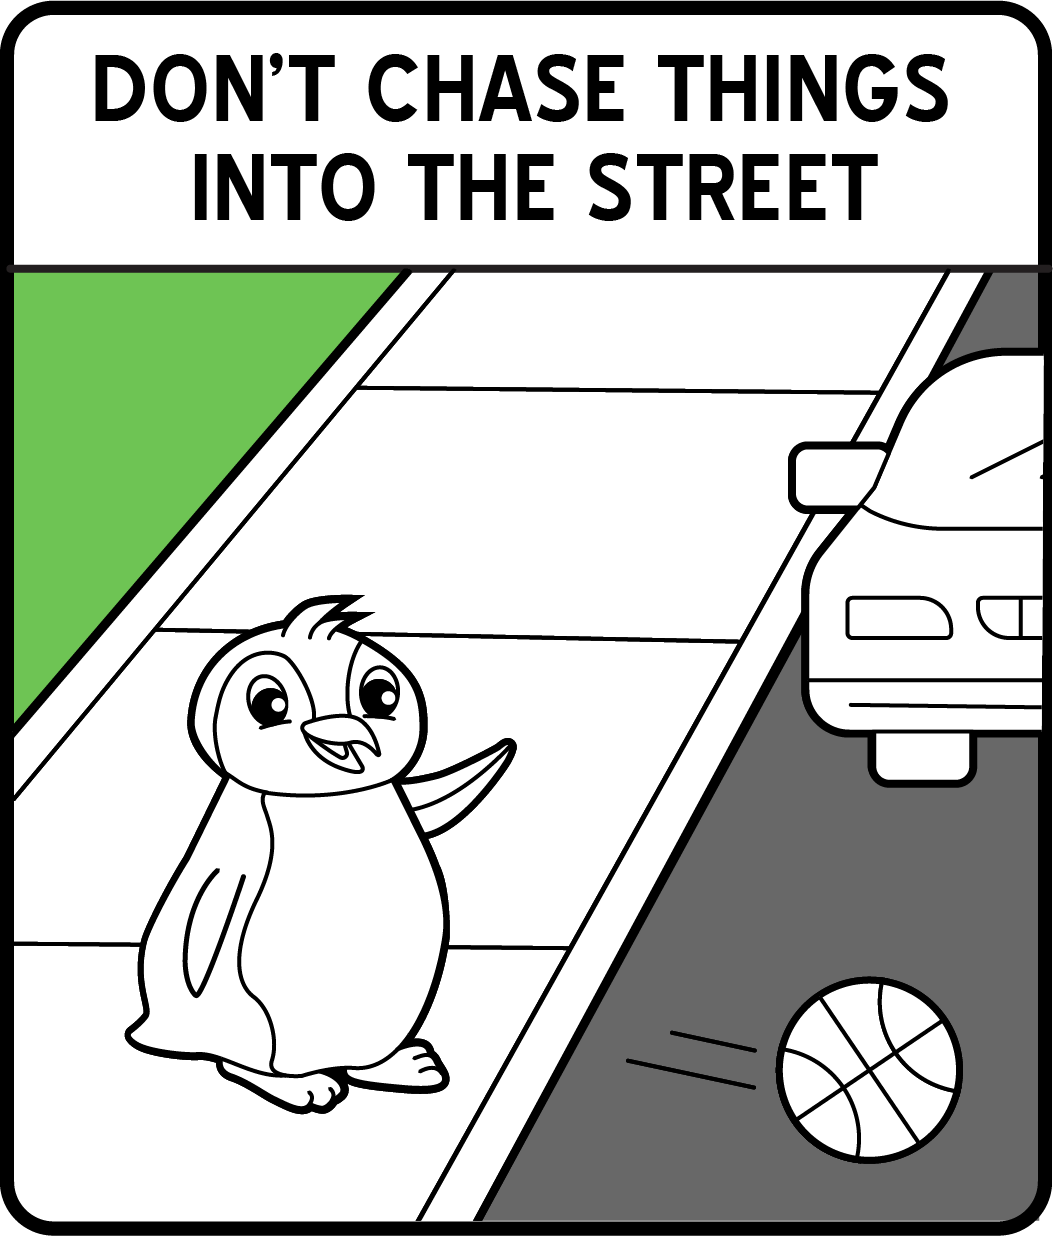 A coloring safety sign of a cartoon penguin watching a ball go across the street with a car in the distance coming.